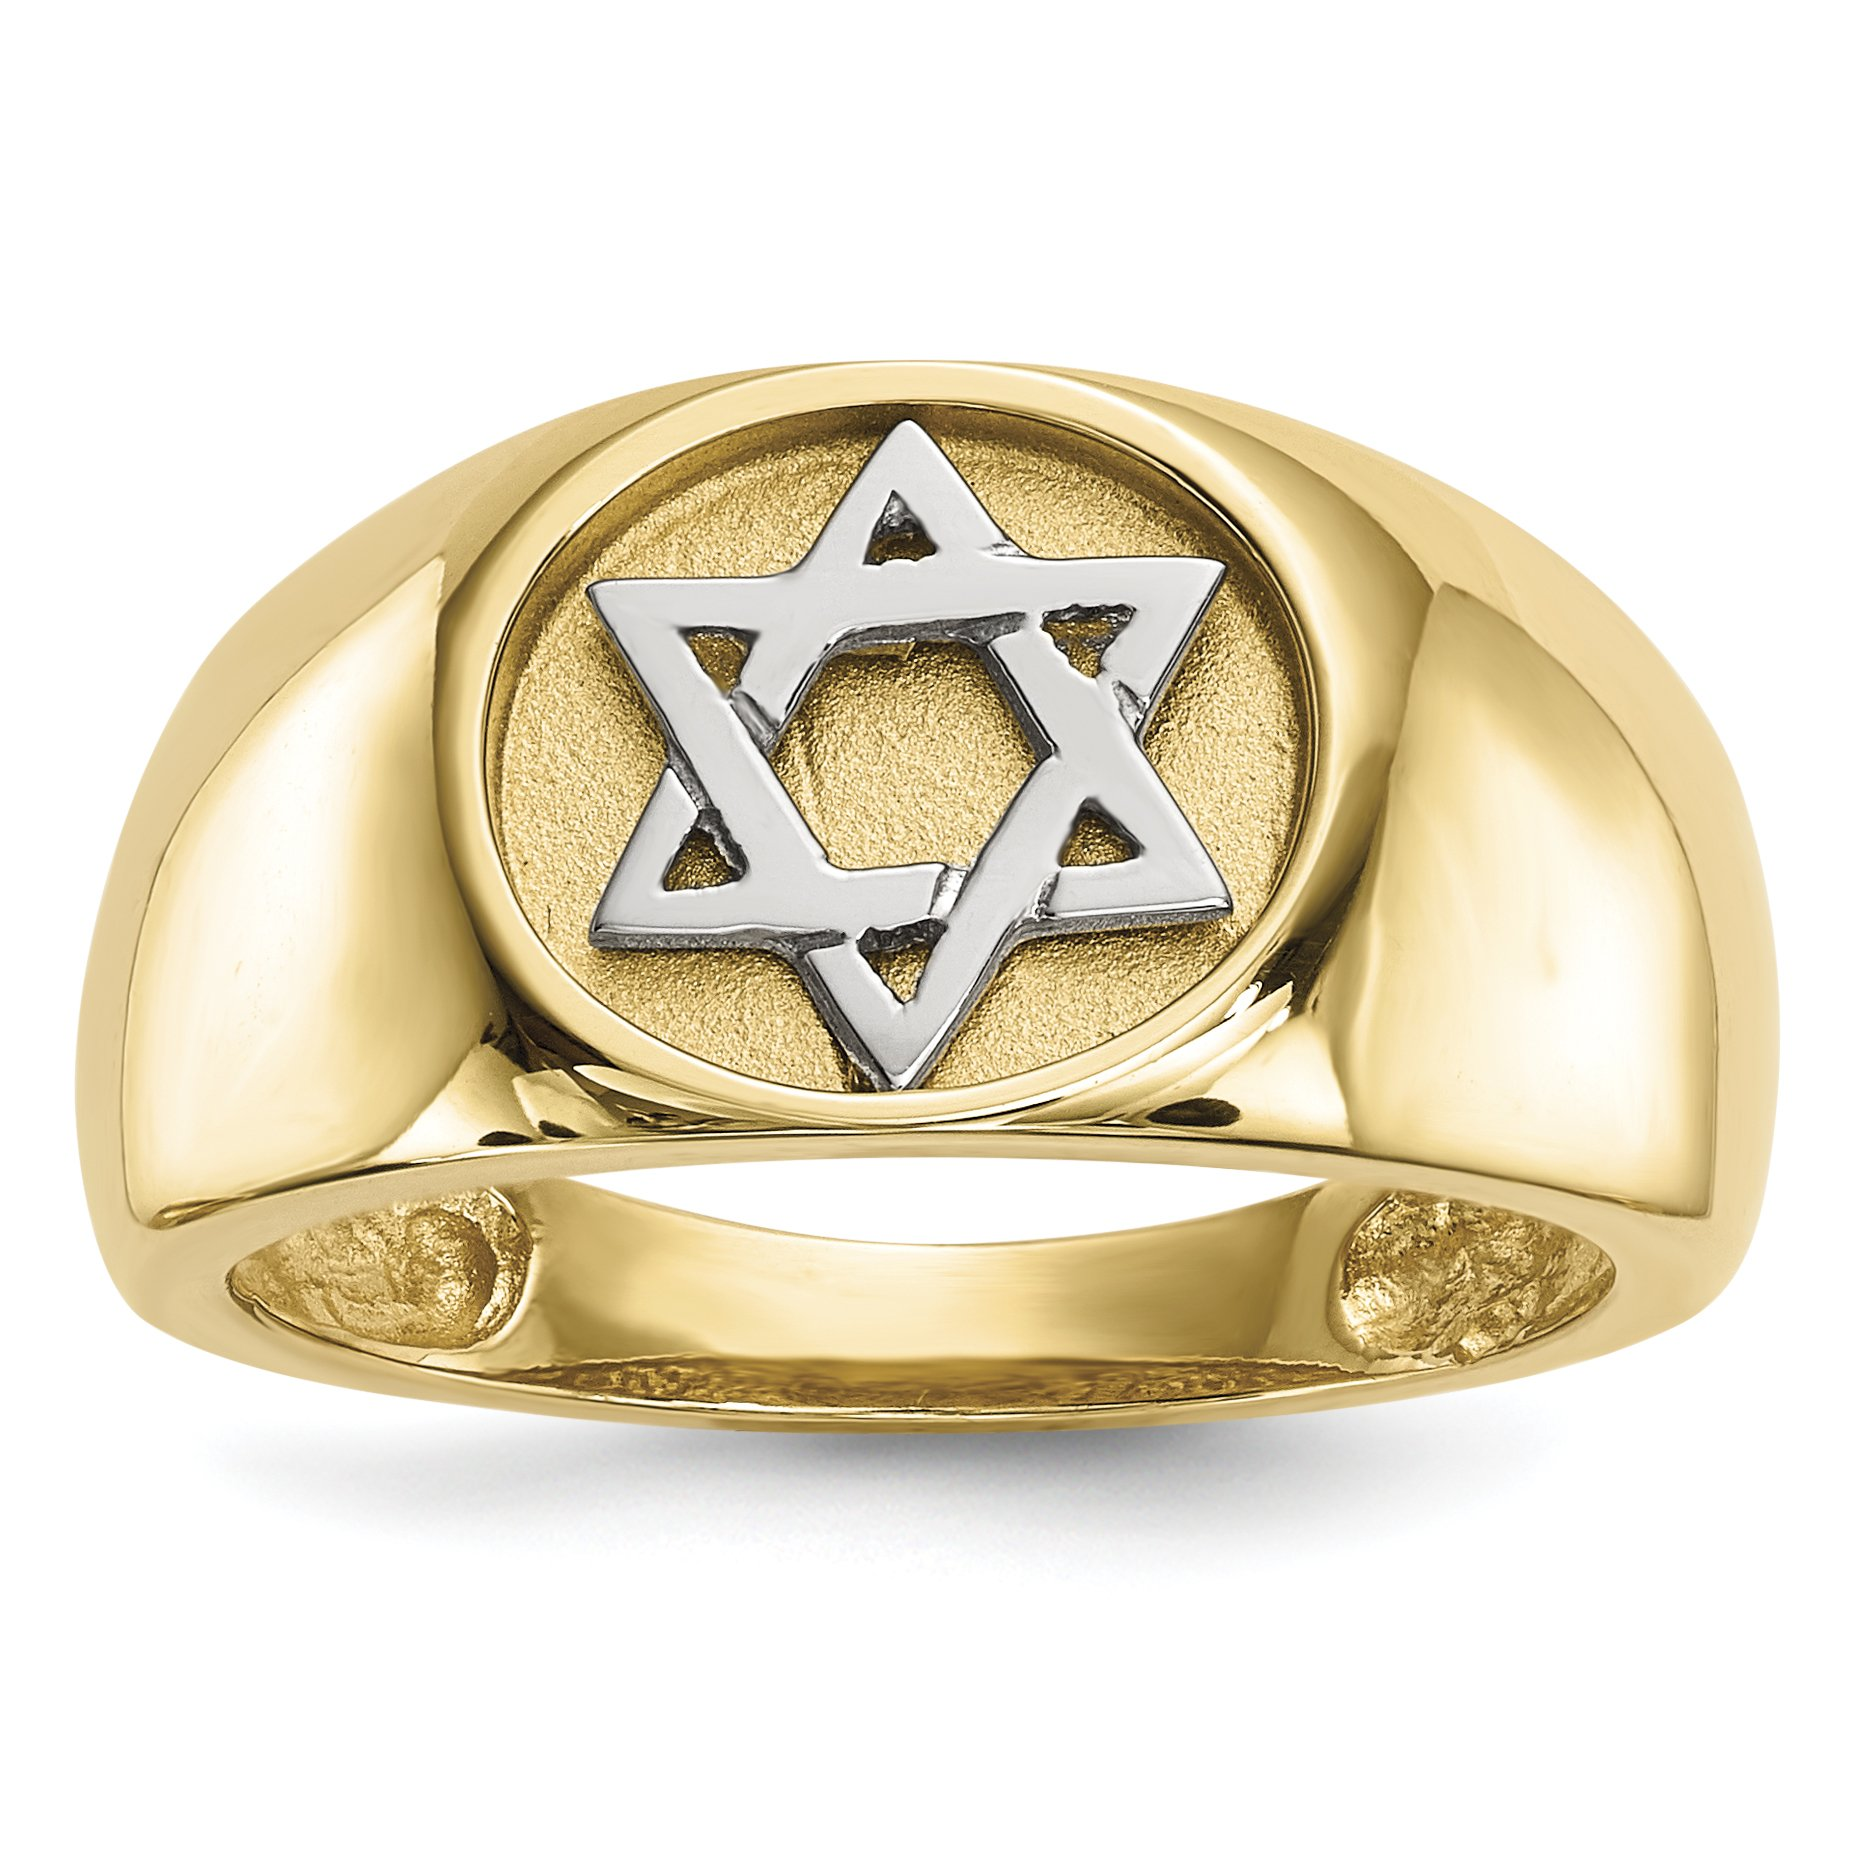 ICE CARATS 14k Yellow Gold Two Tone Jewish Jewelry Star Of David Band Ring Size 7.00 Religious Fine Jewelry Gift Set For Women Heart by ICE CARATS (Image #1)